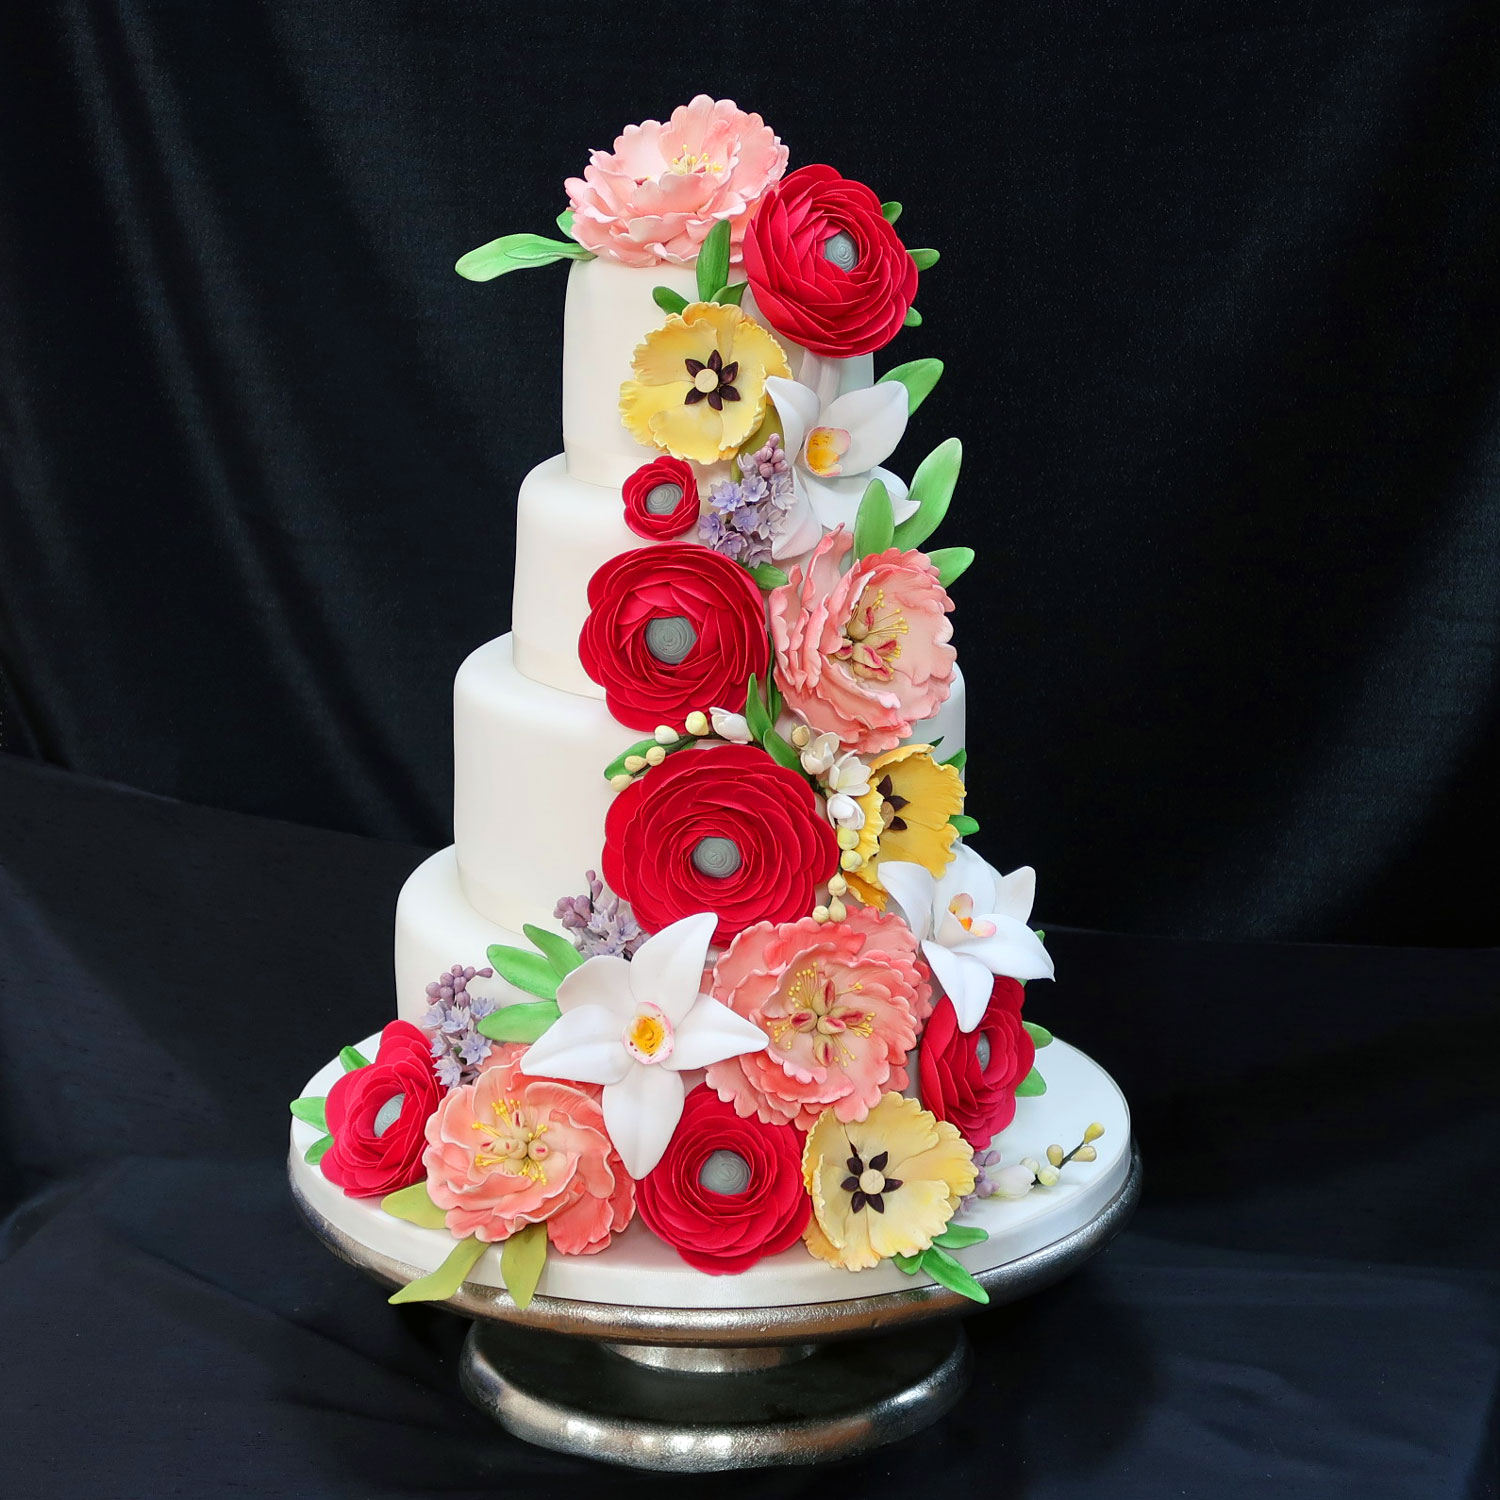 4 tier Wedding Cake with a Cascade of handcrafted sugar flowers